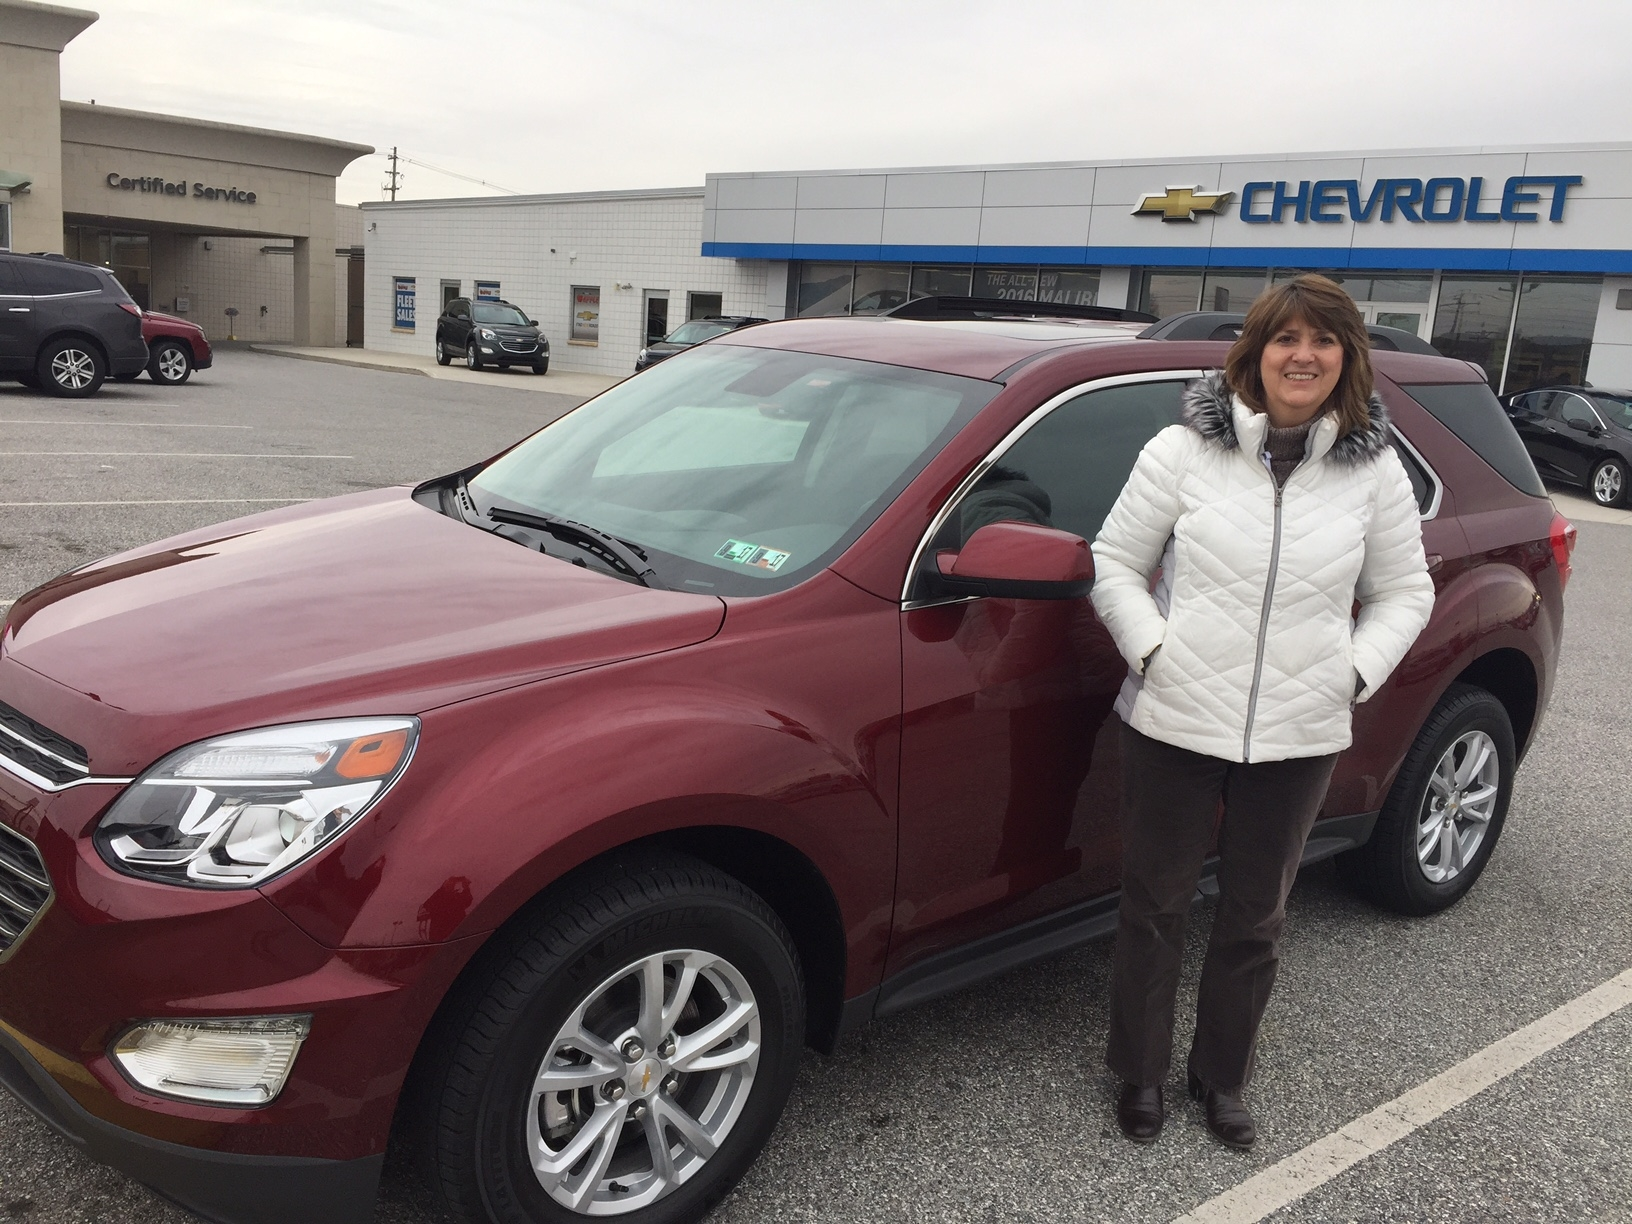 Find 44 Listings Related To Apple Chevrolet York Pa In York On YP.com. See  Reviews, Photos, Directions, Phone Numbers And More For Apple Chevrolet  York Pa ...